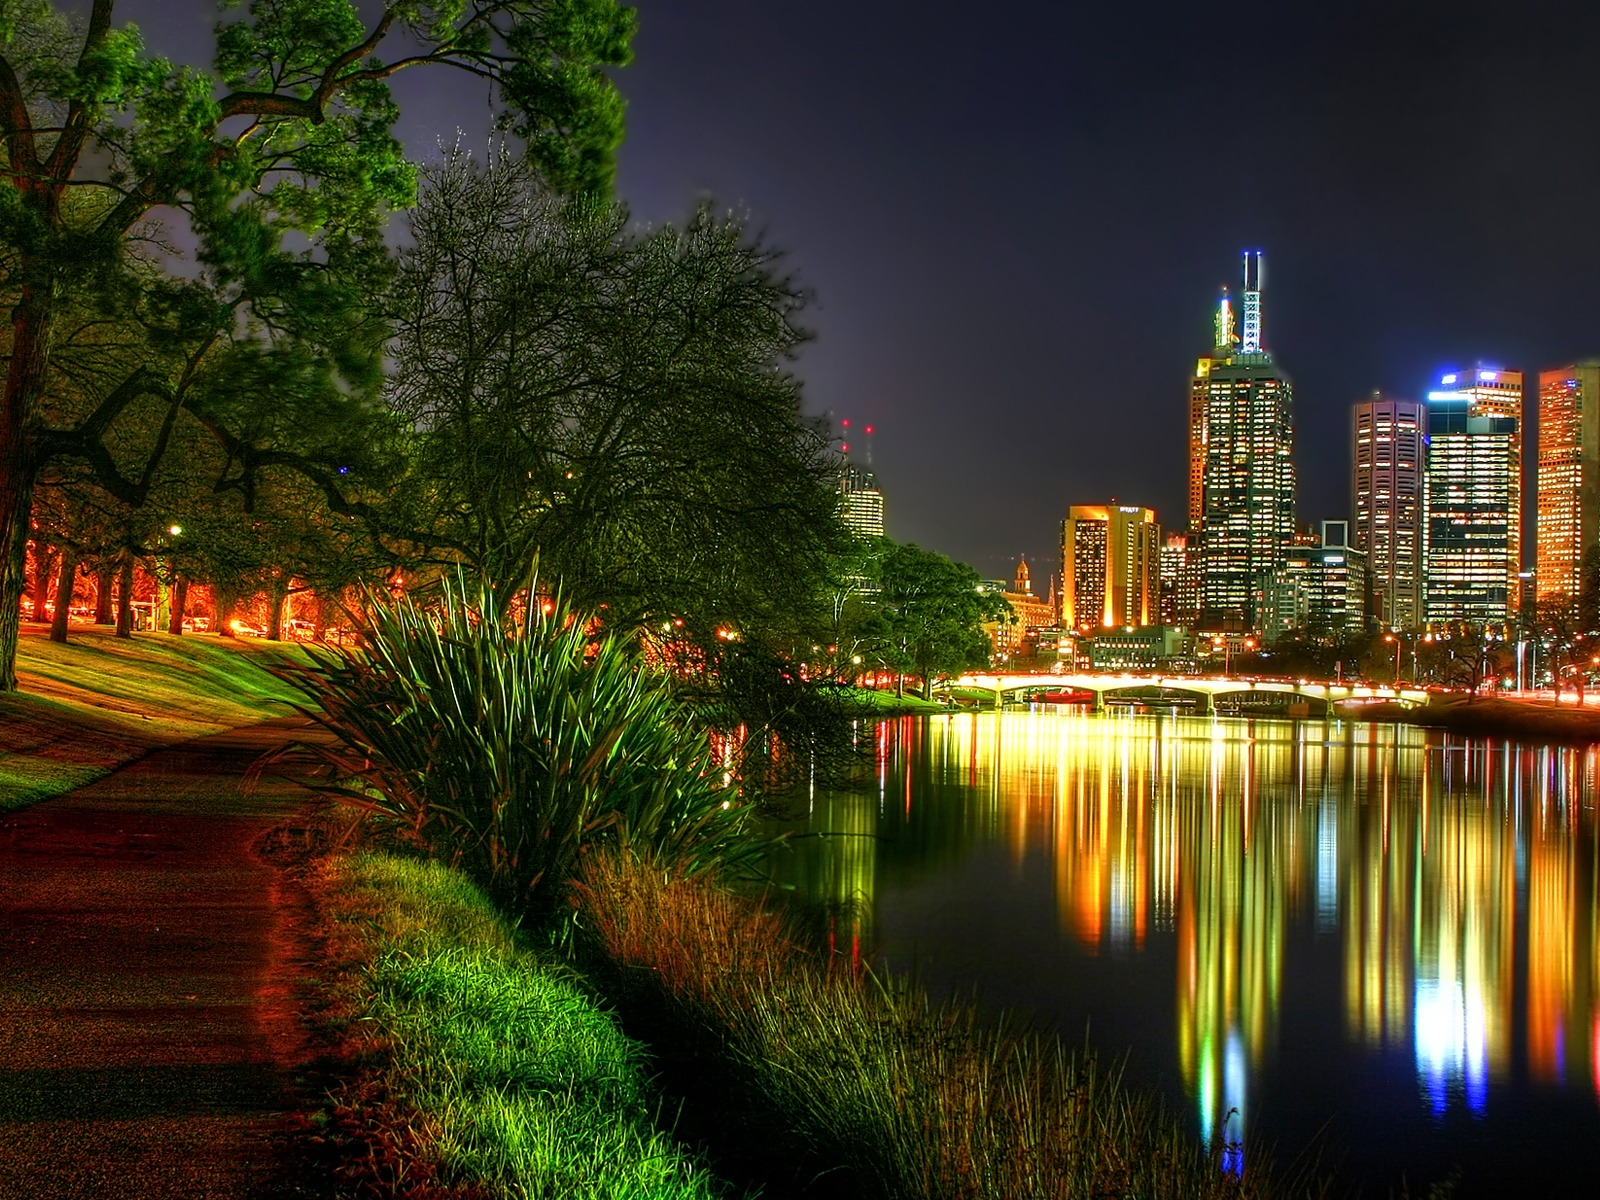 The city night lights wallpapers and images   wallpapers pictures 1600x1200